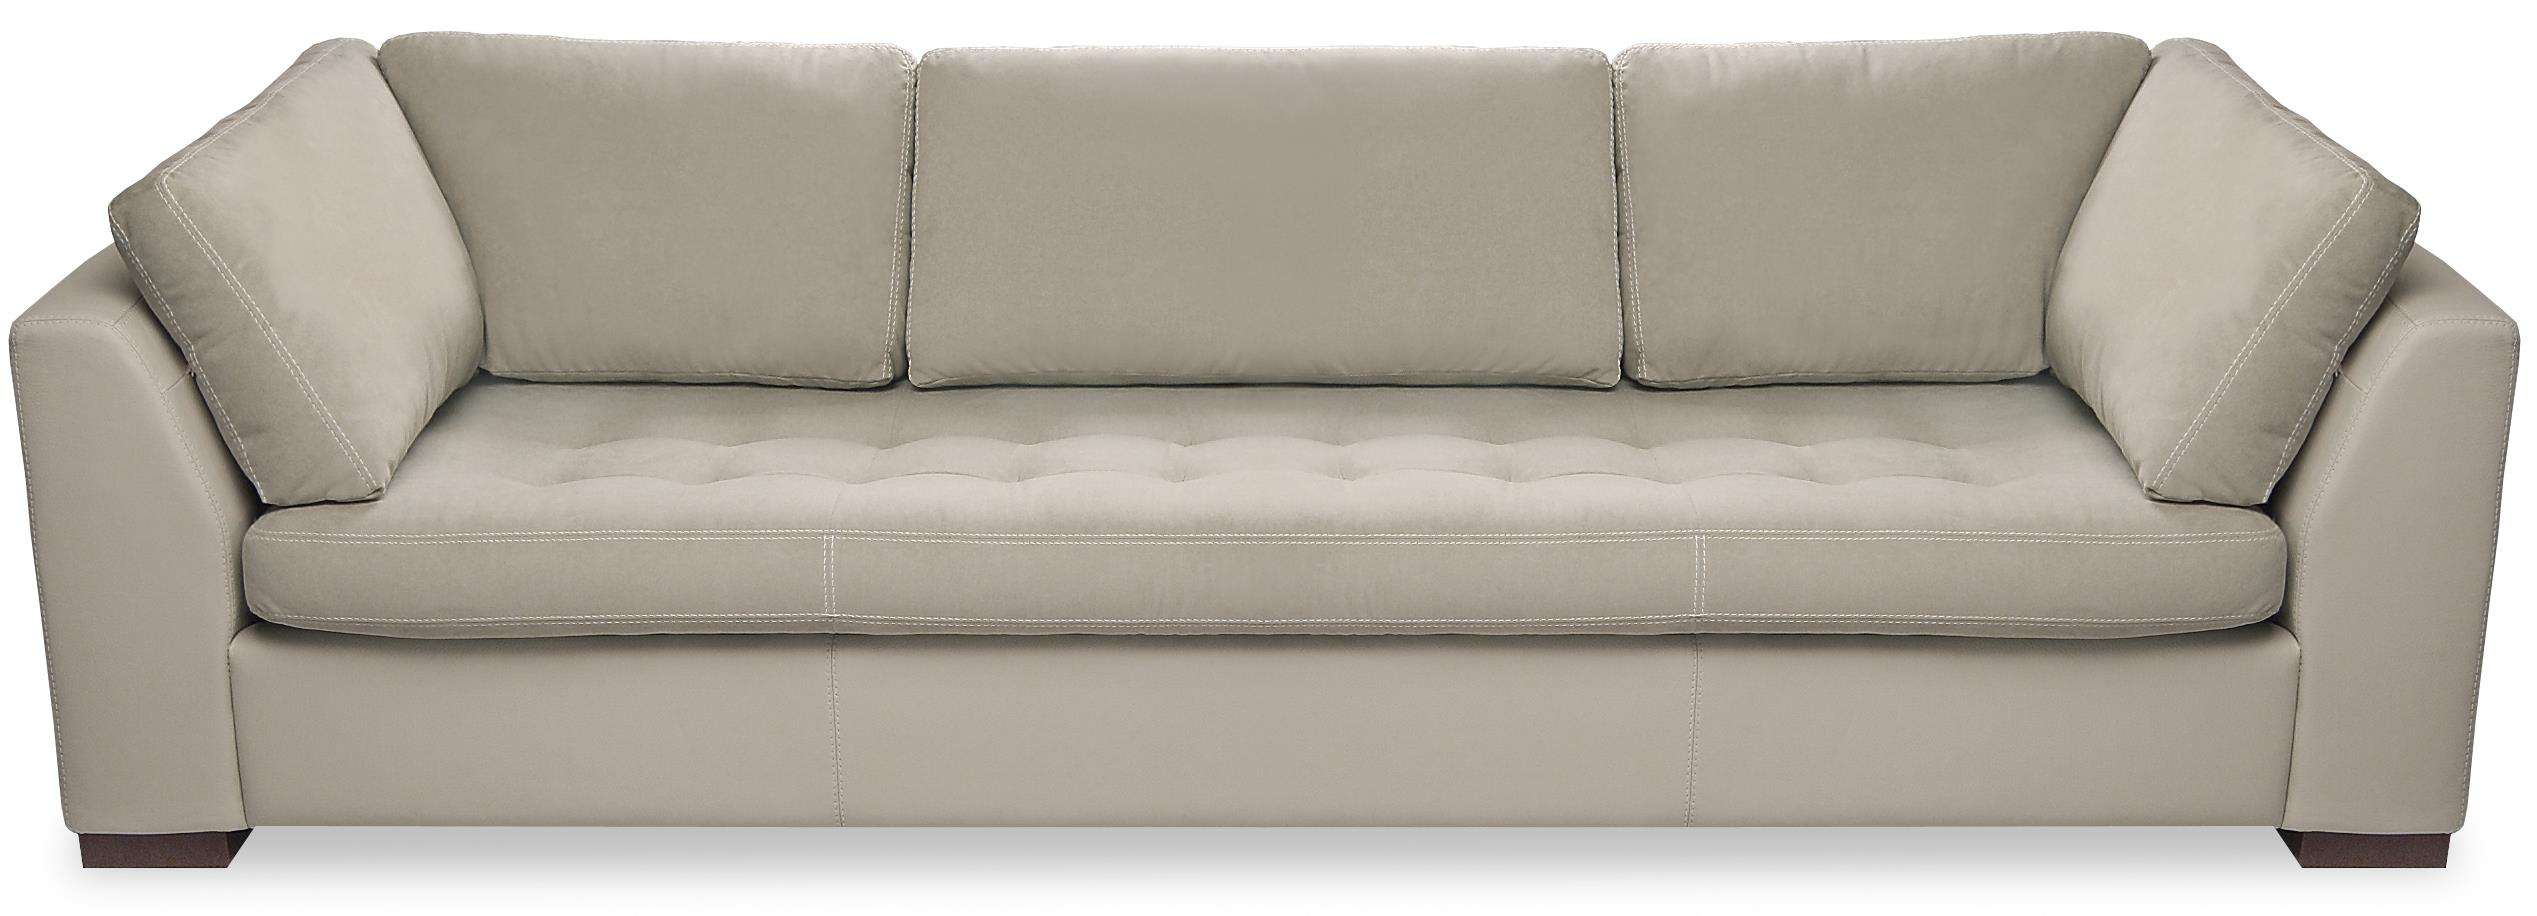 Astoria Sofa by American Leather at Williams & Kay